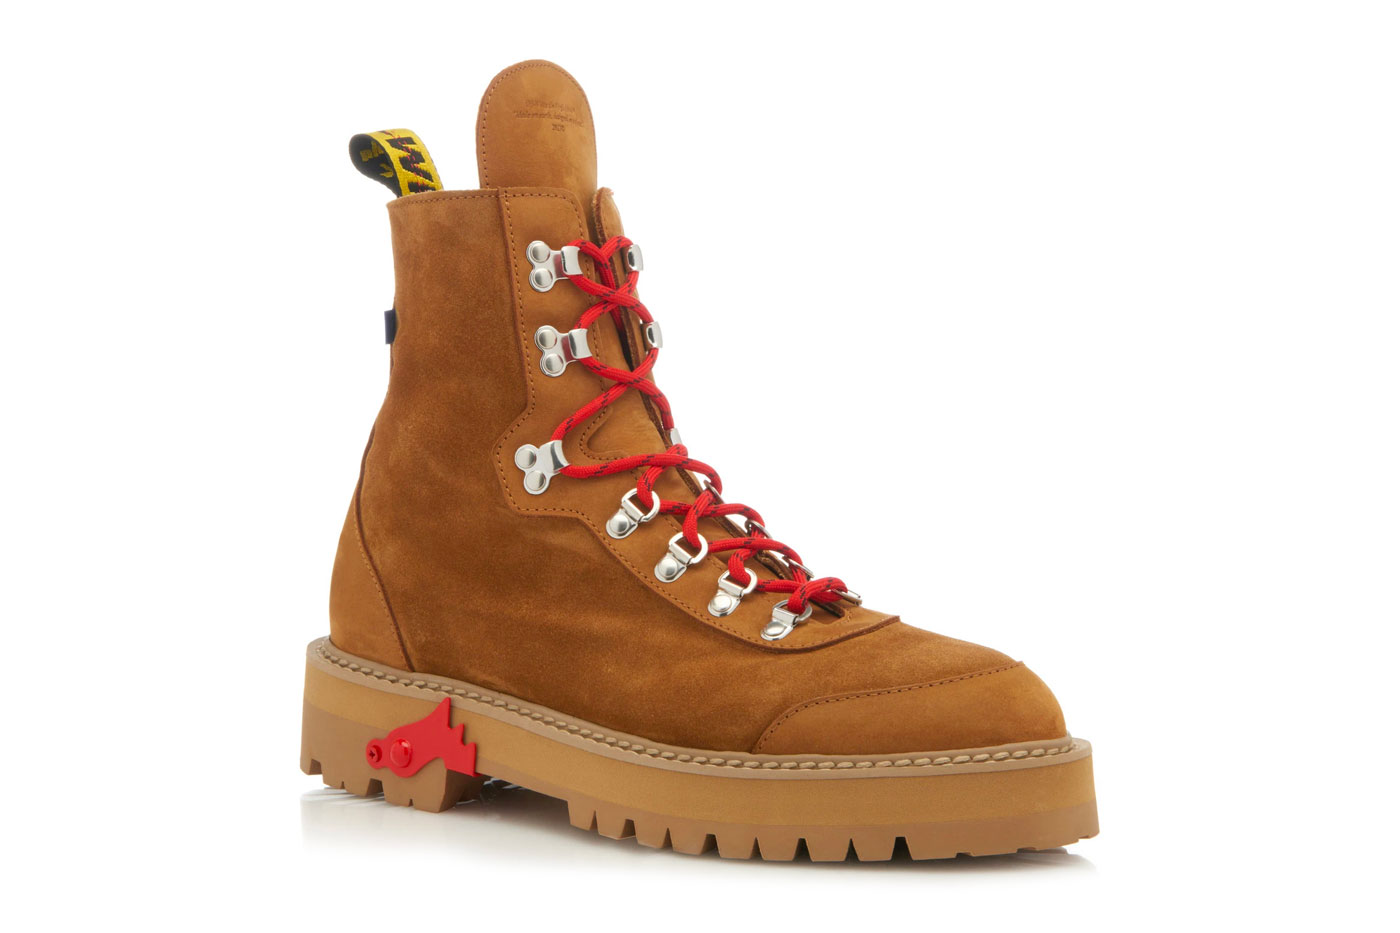 7d3002b64f8ee Off-White™ Brown Suede Hiking Boots Release Date   HYPEBEAST DROPS